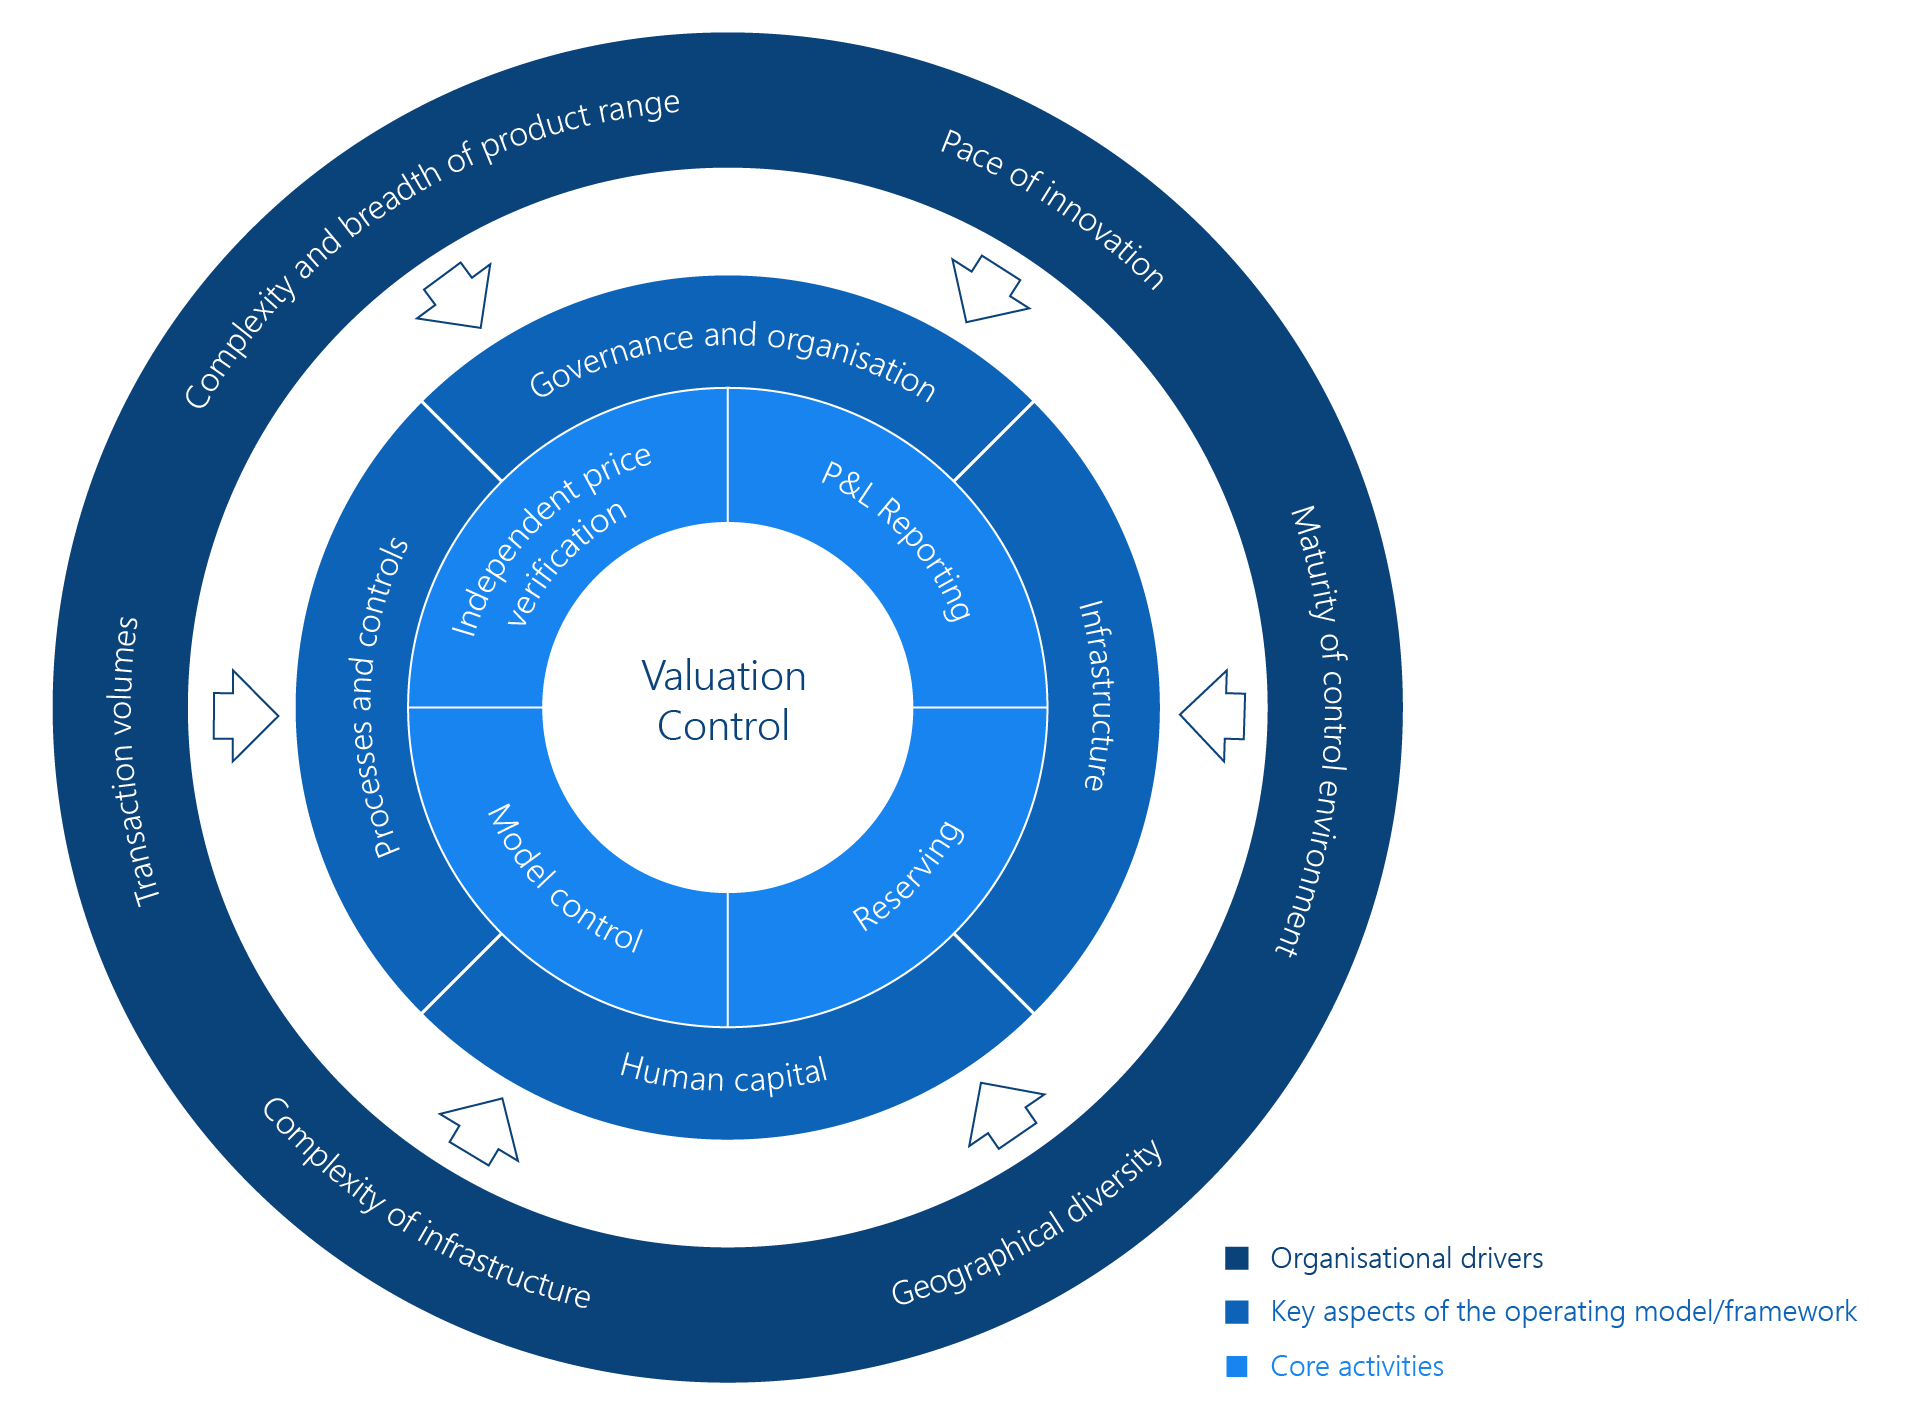 Drivers for Valuation Control